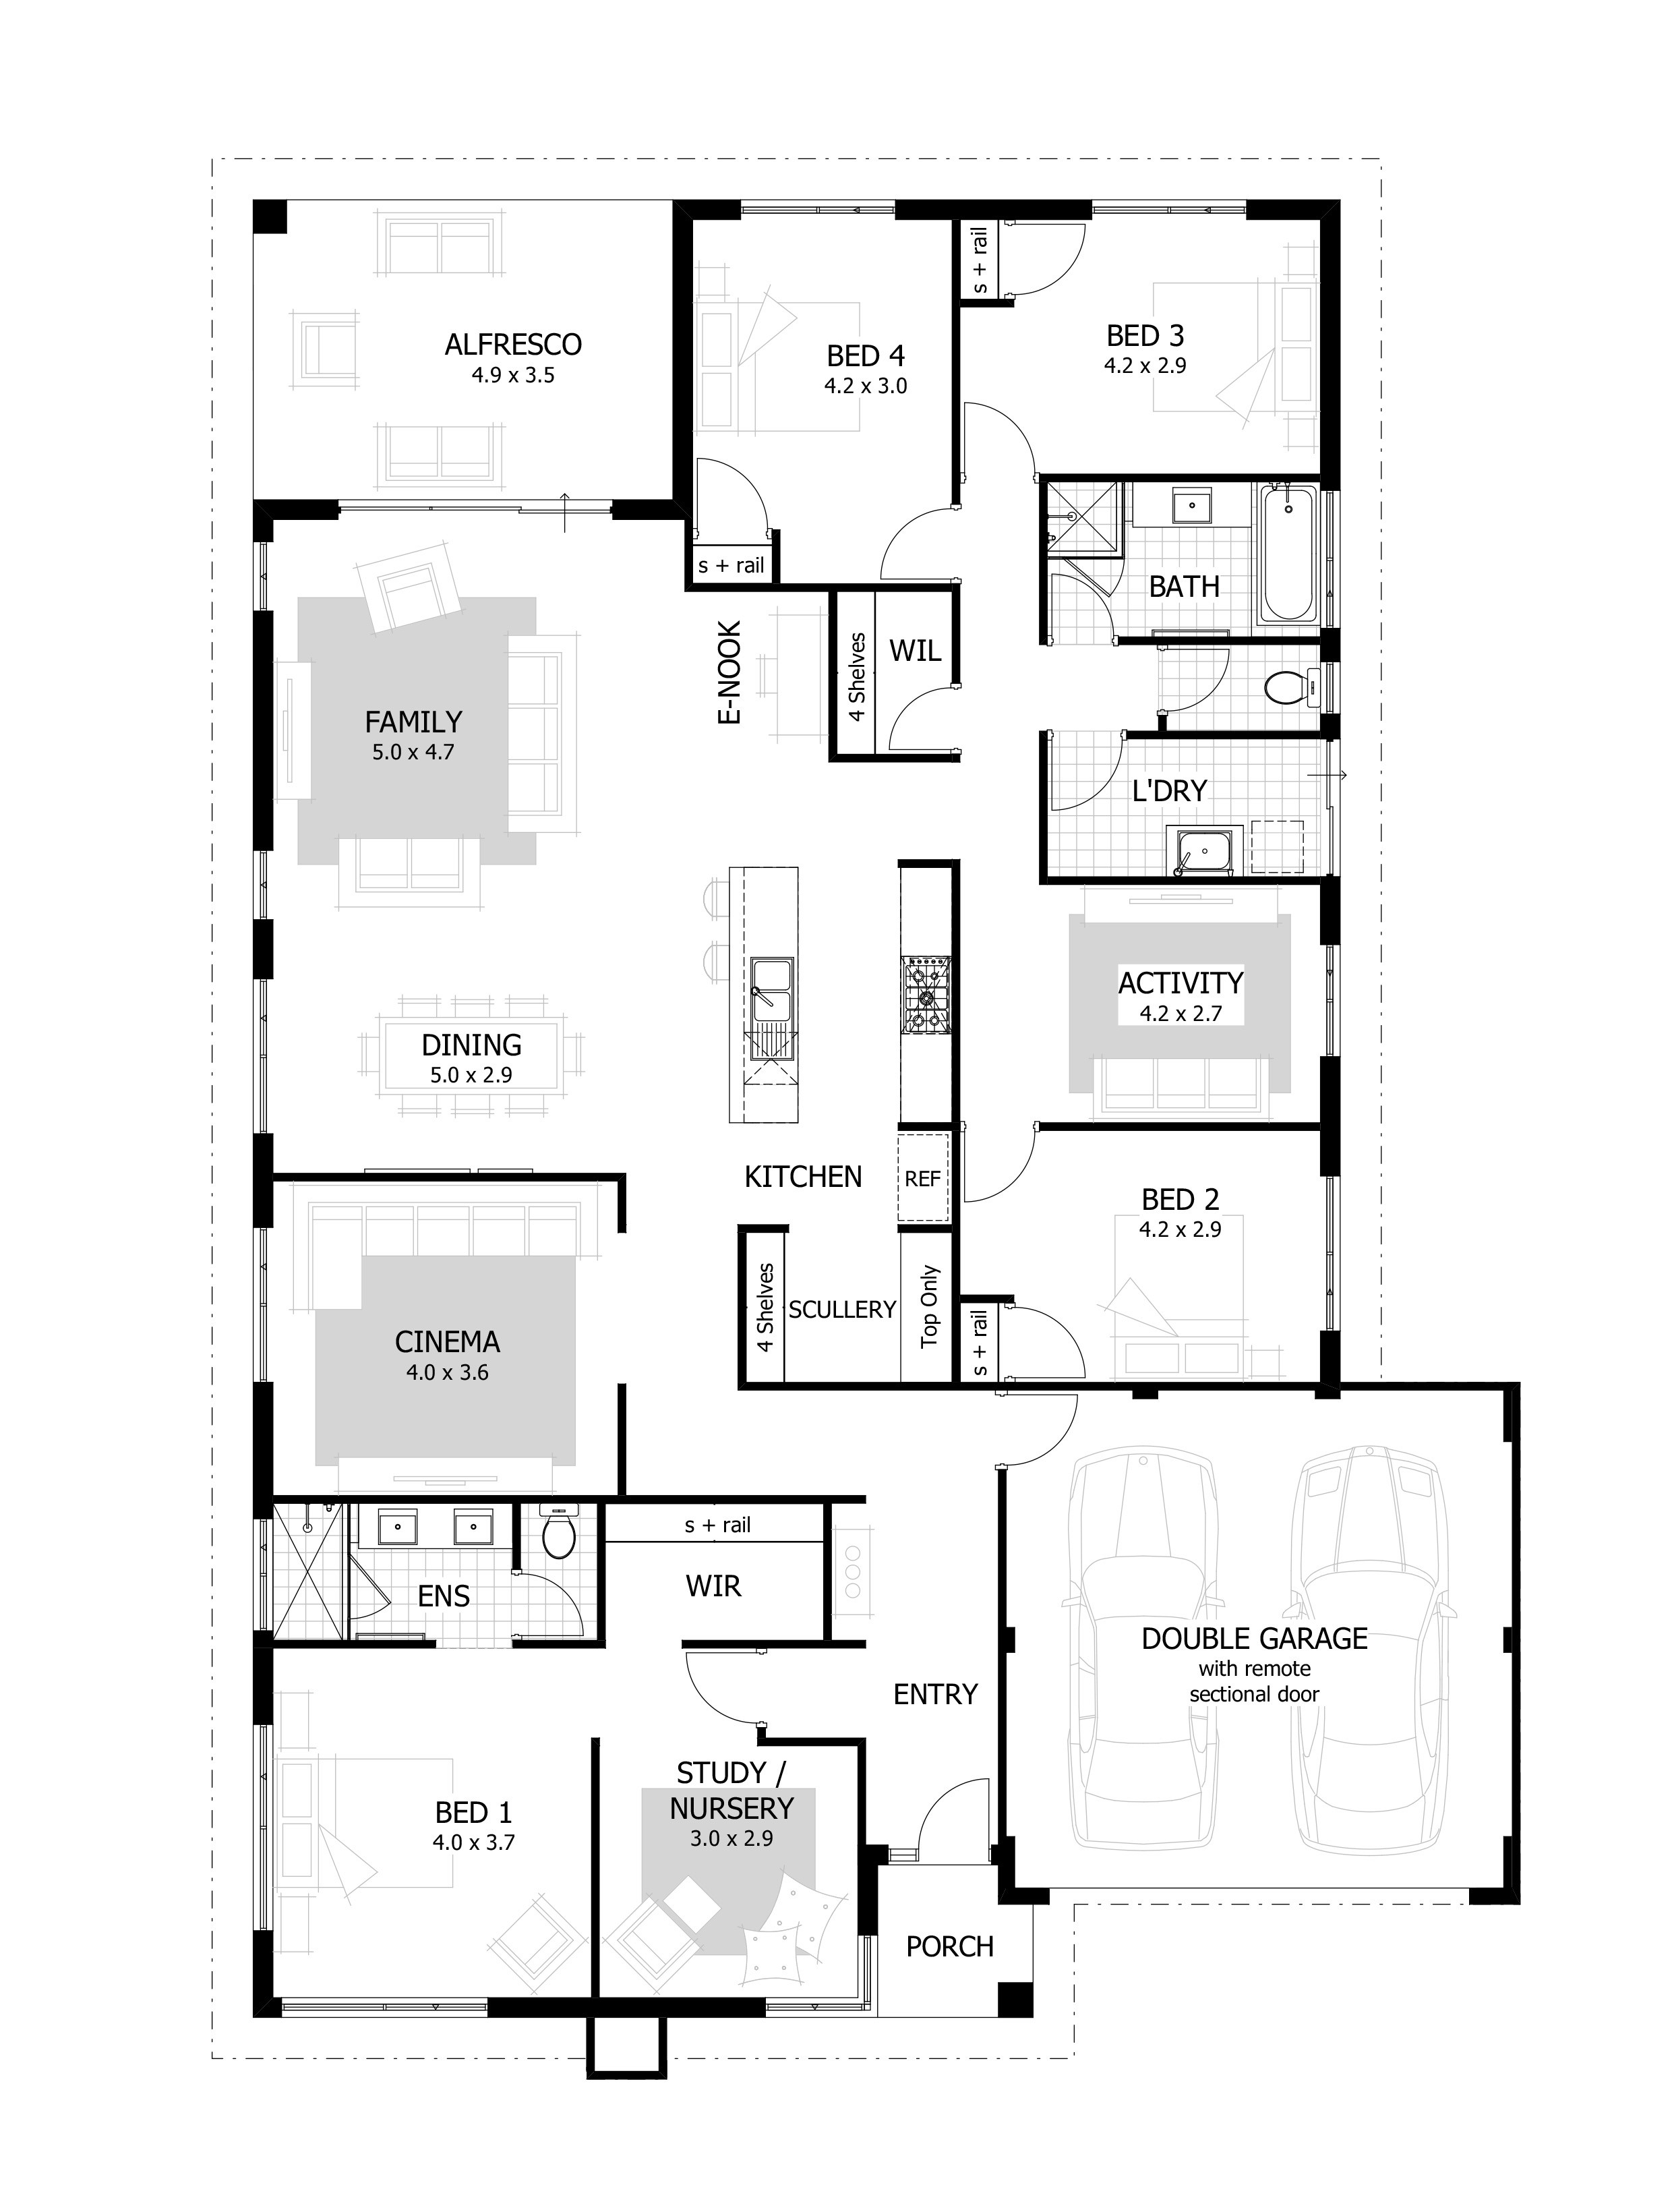 Best ideas about 4 Bedroom Floor Plans . Save or Pin 4 Bedroom House Plans & Home Designs Now.